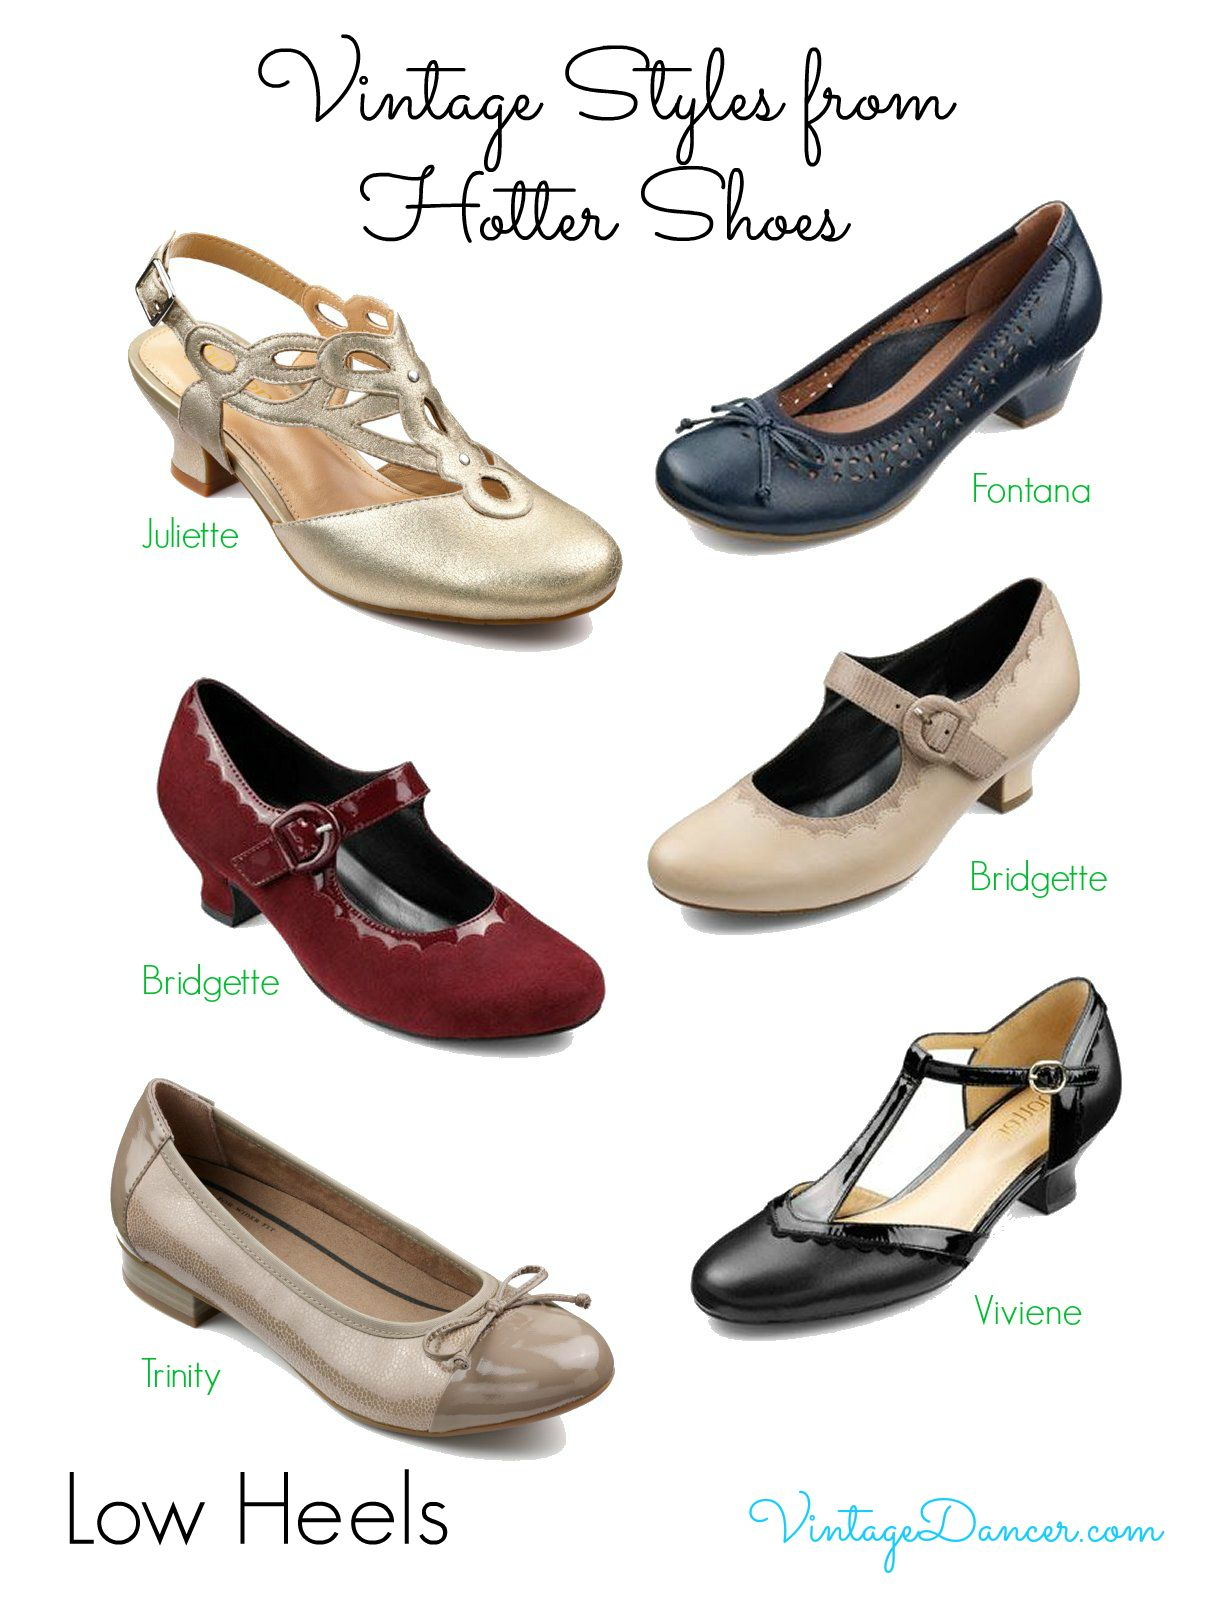 c236866b30ea Vintage style Hotter Shoes. These styles could easily suit eras from the  1920s up to the 1960s. Shop them at VintageDancer.com